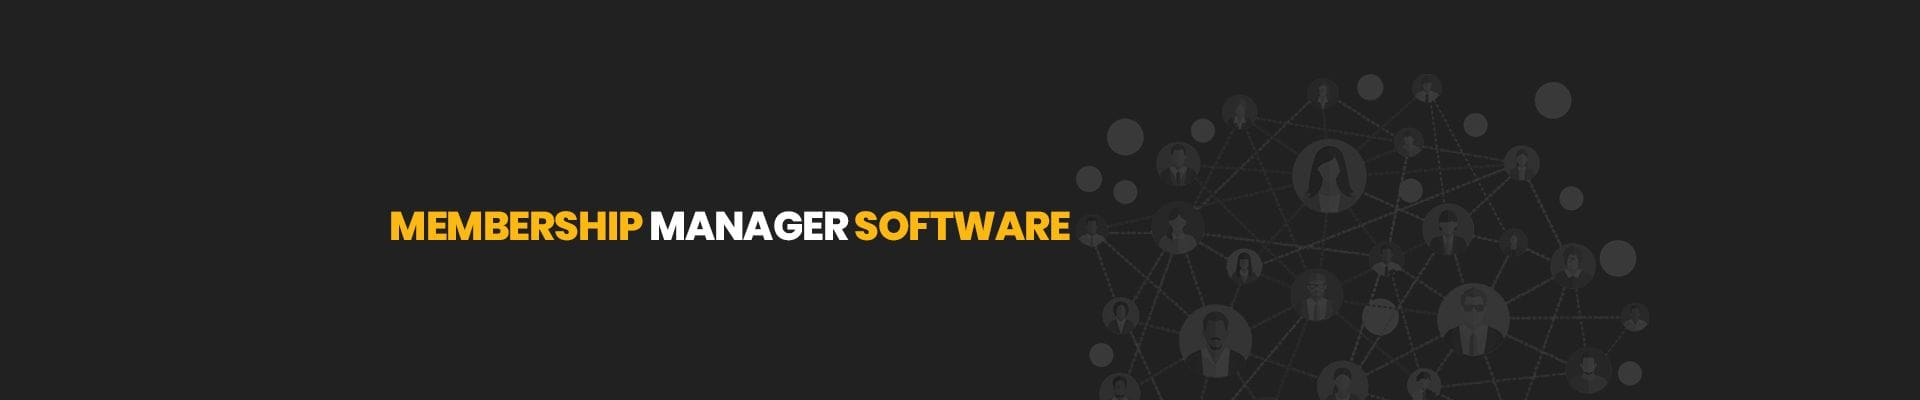 Membership Management Software | Membership Manager Platform